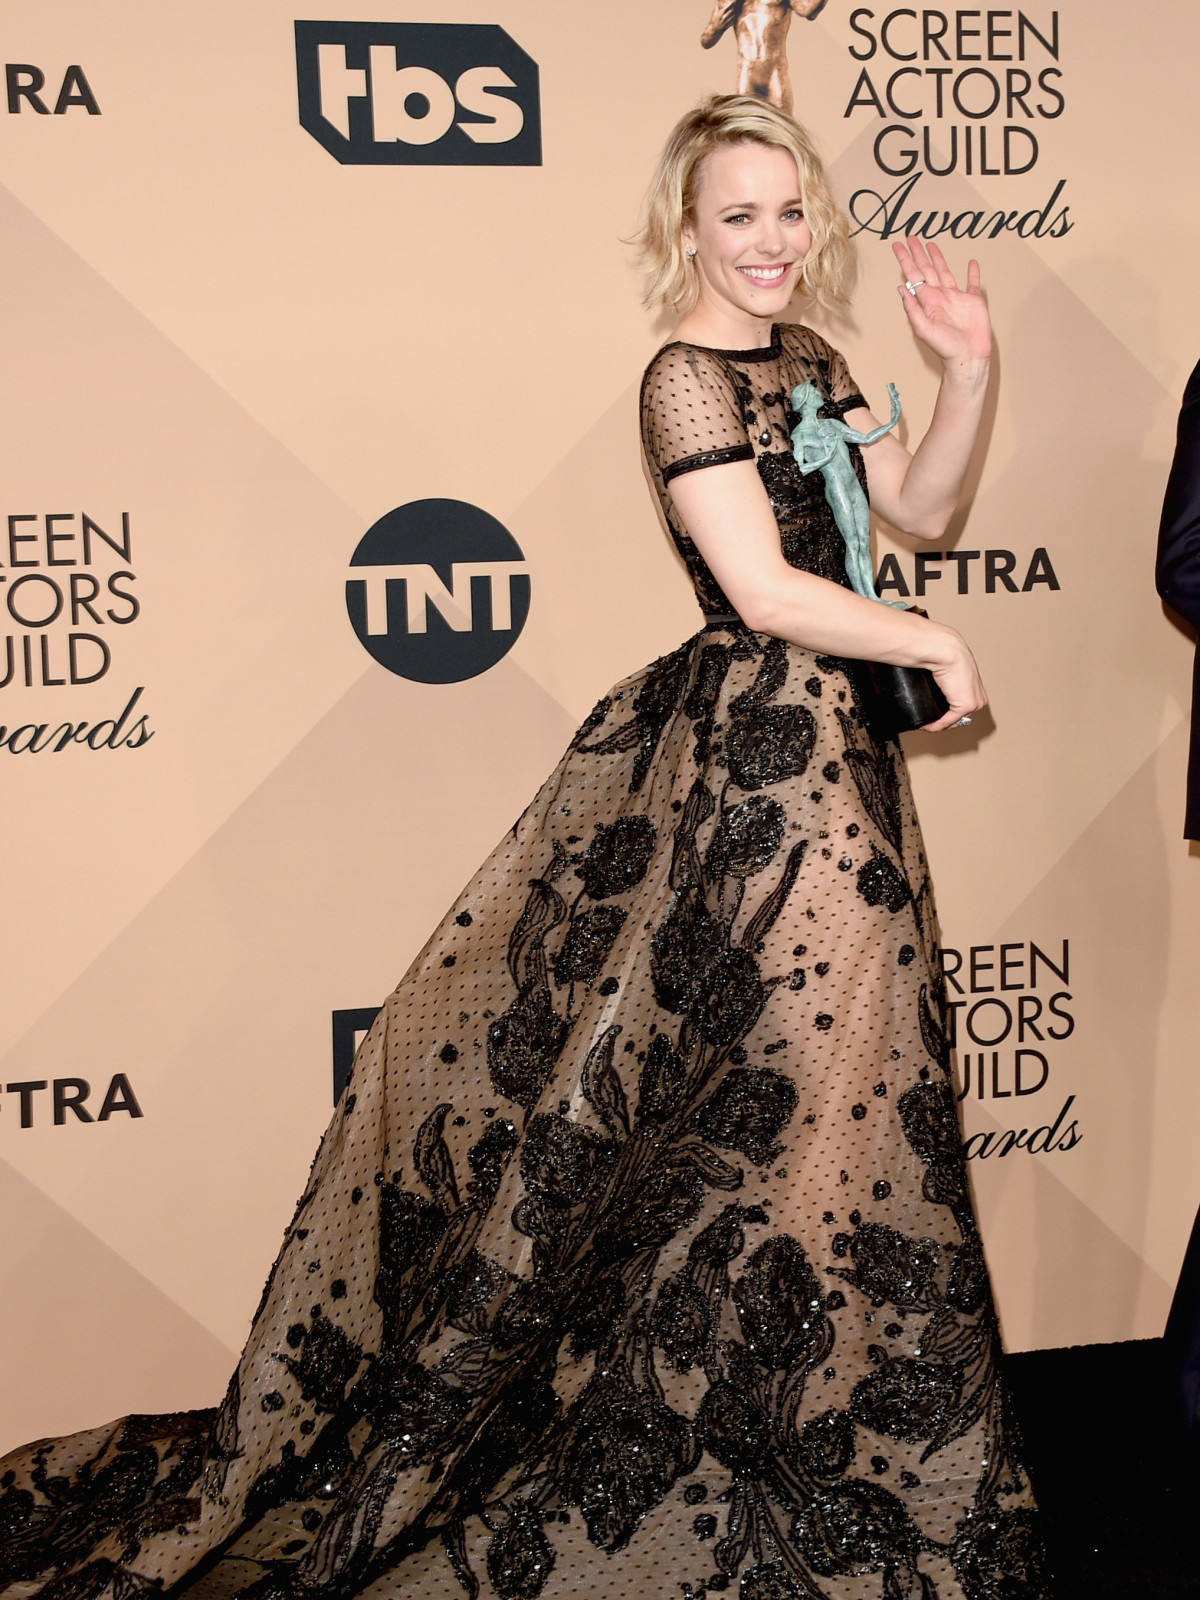 Rachel Adams at Screen Actors Guild Awards